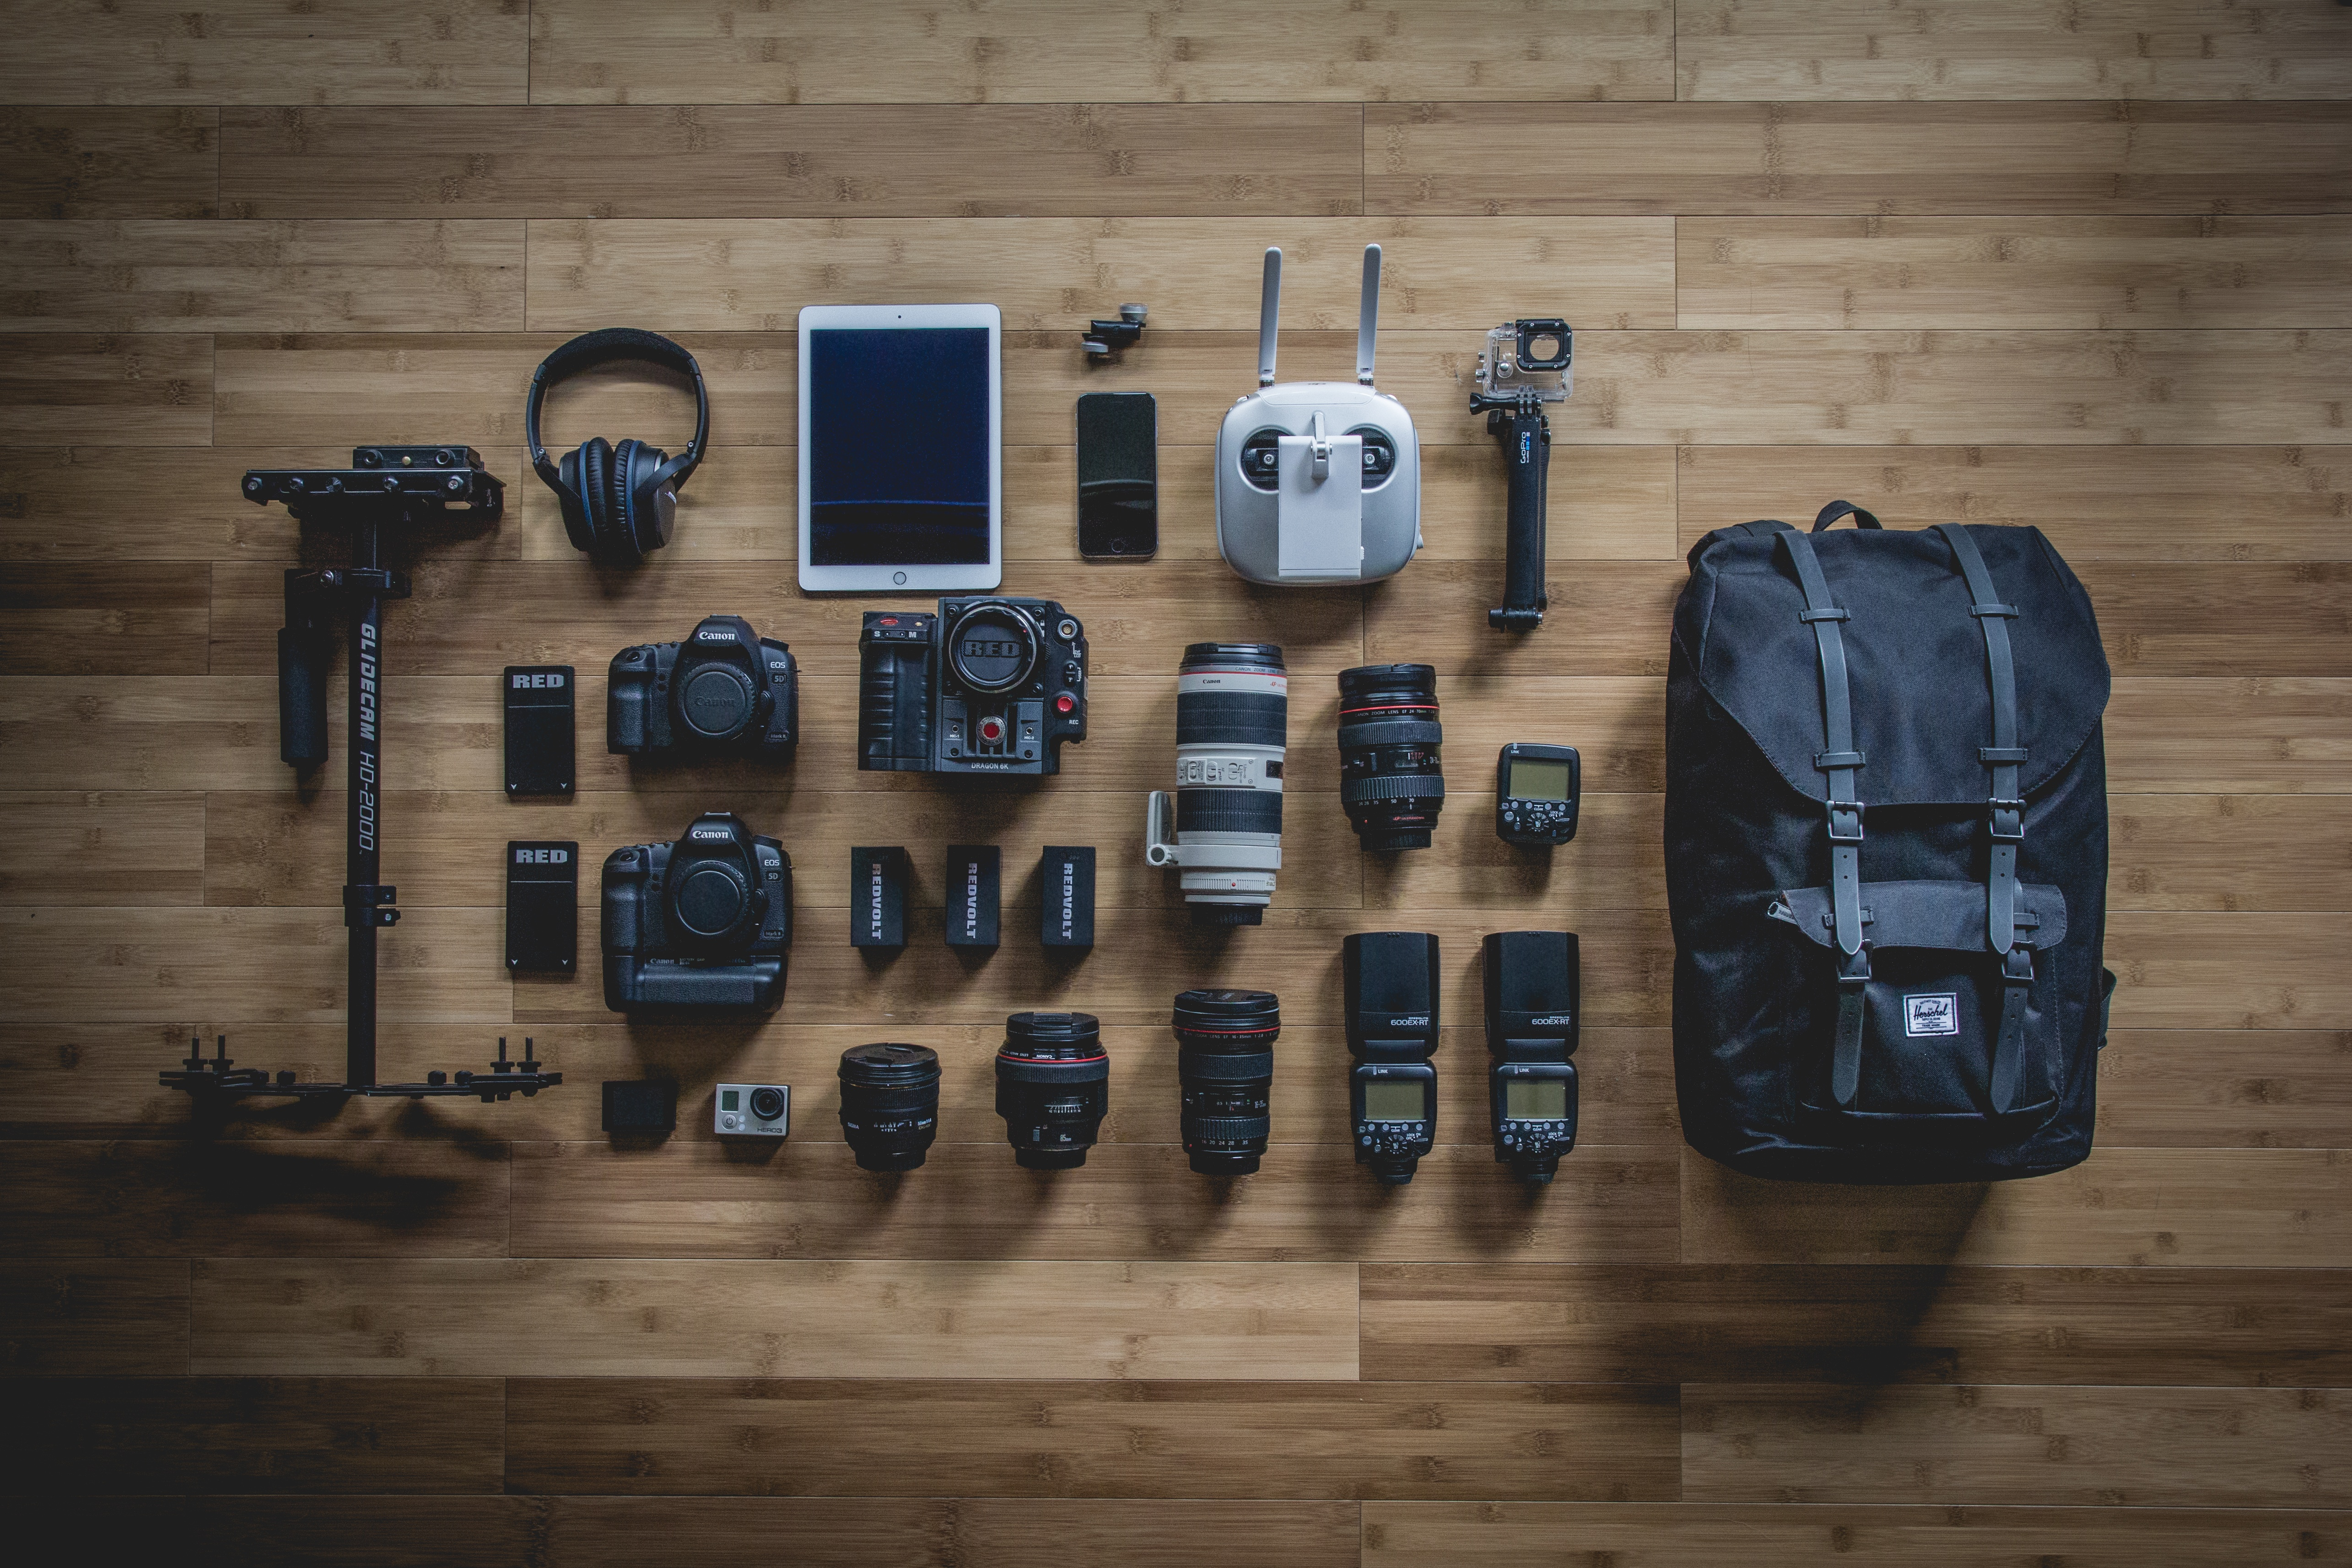 Cameras and lenses, Backpack, Cameras, Category, Collection, HQ Photo